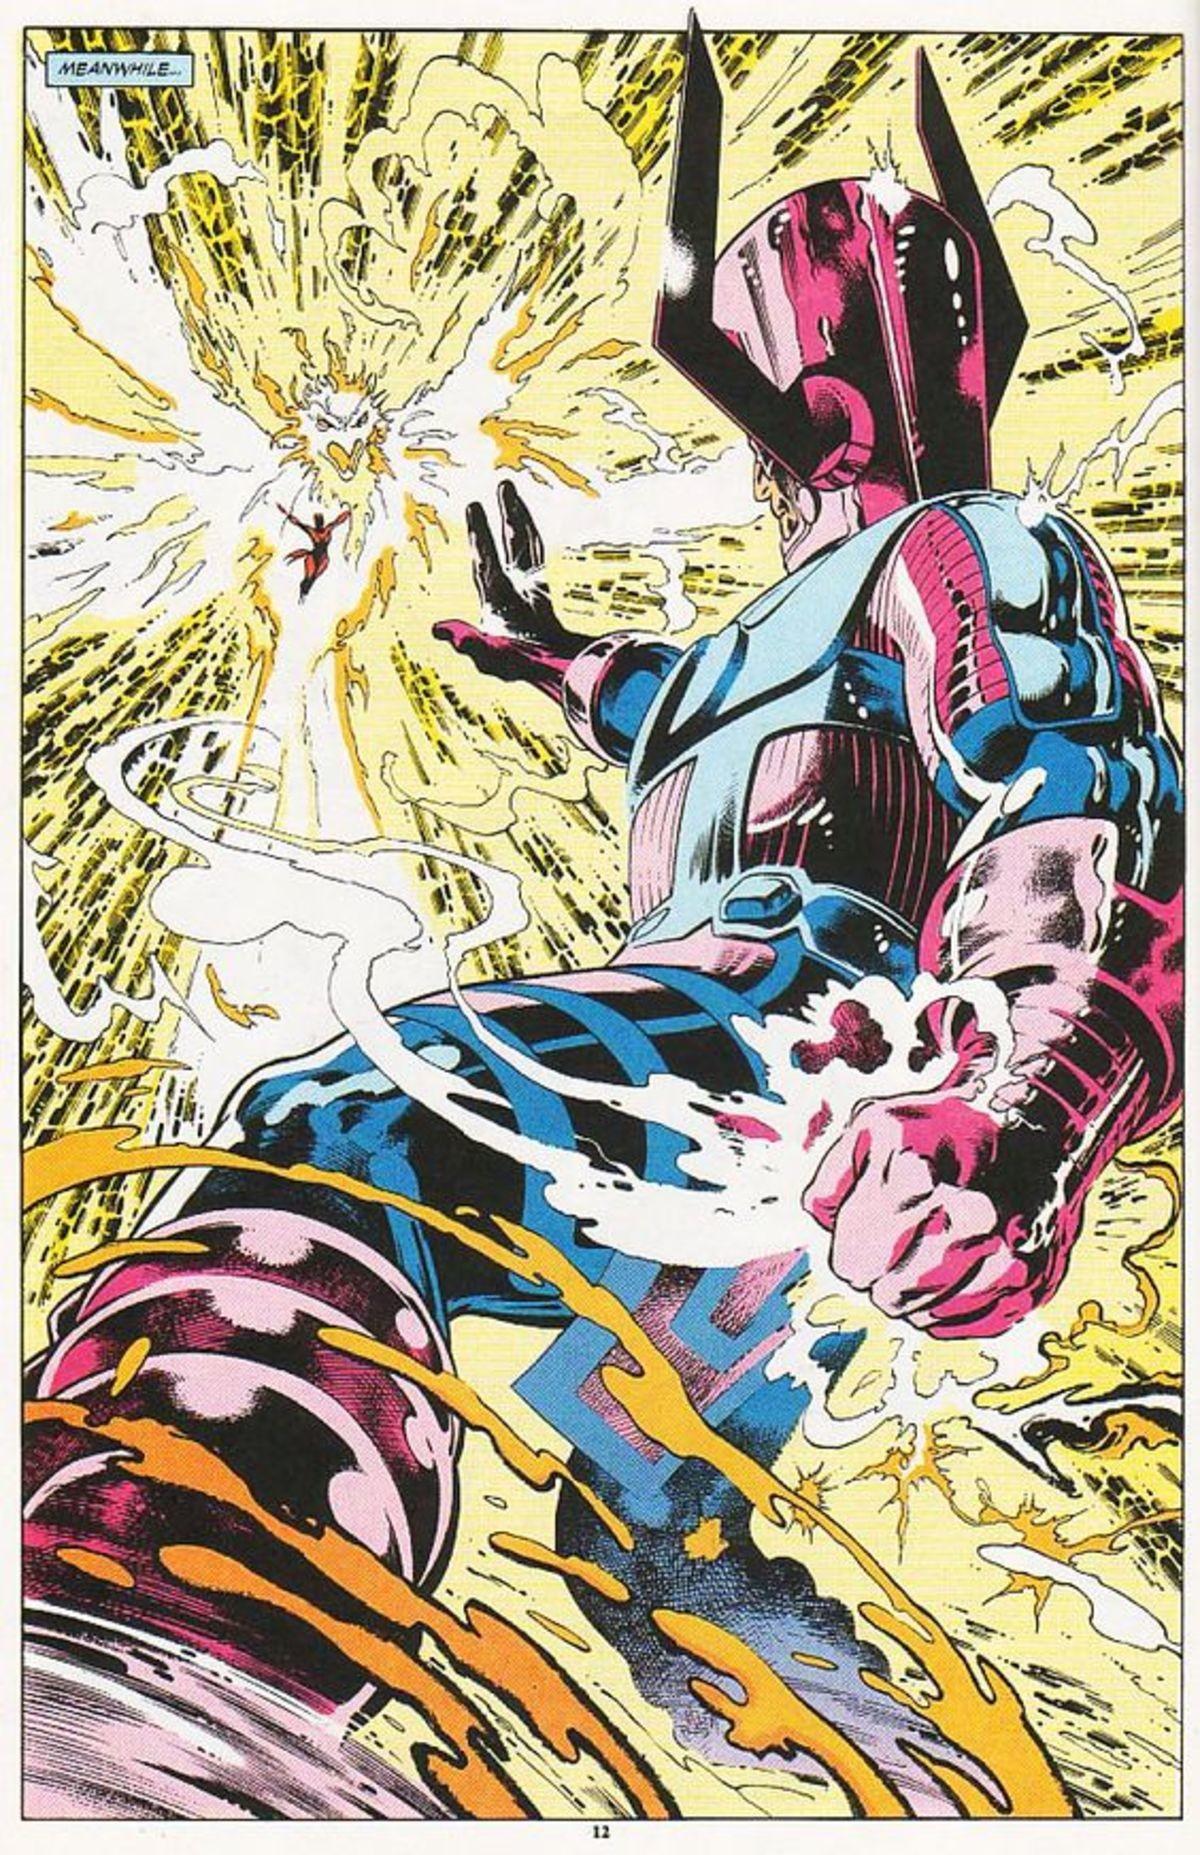 scientific Rook. .. Galactus got wrecked or everything I've heard about Phoenix is a lie